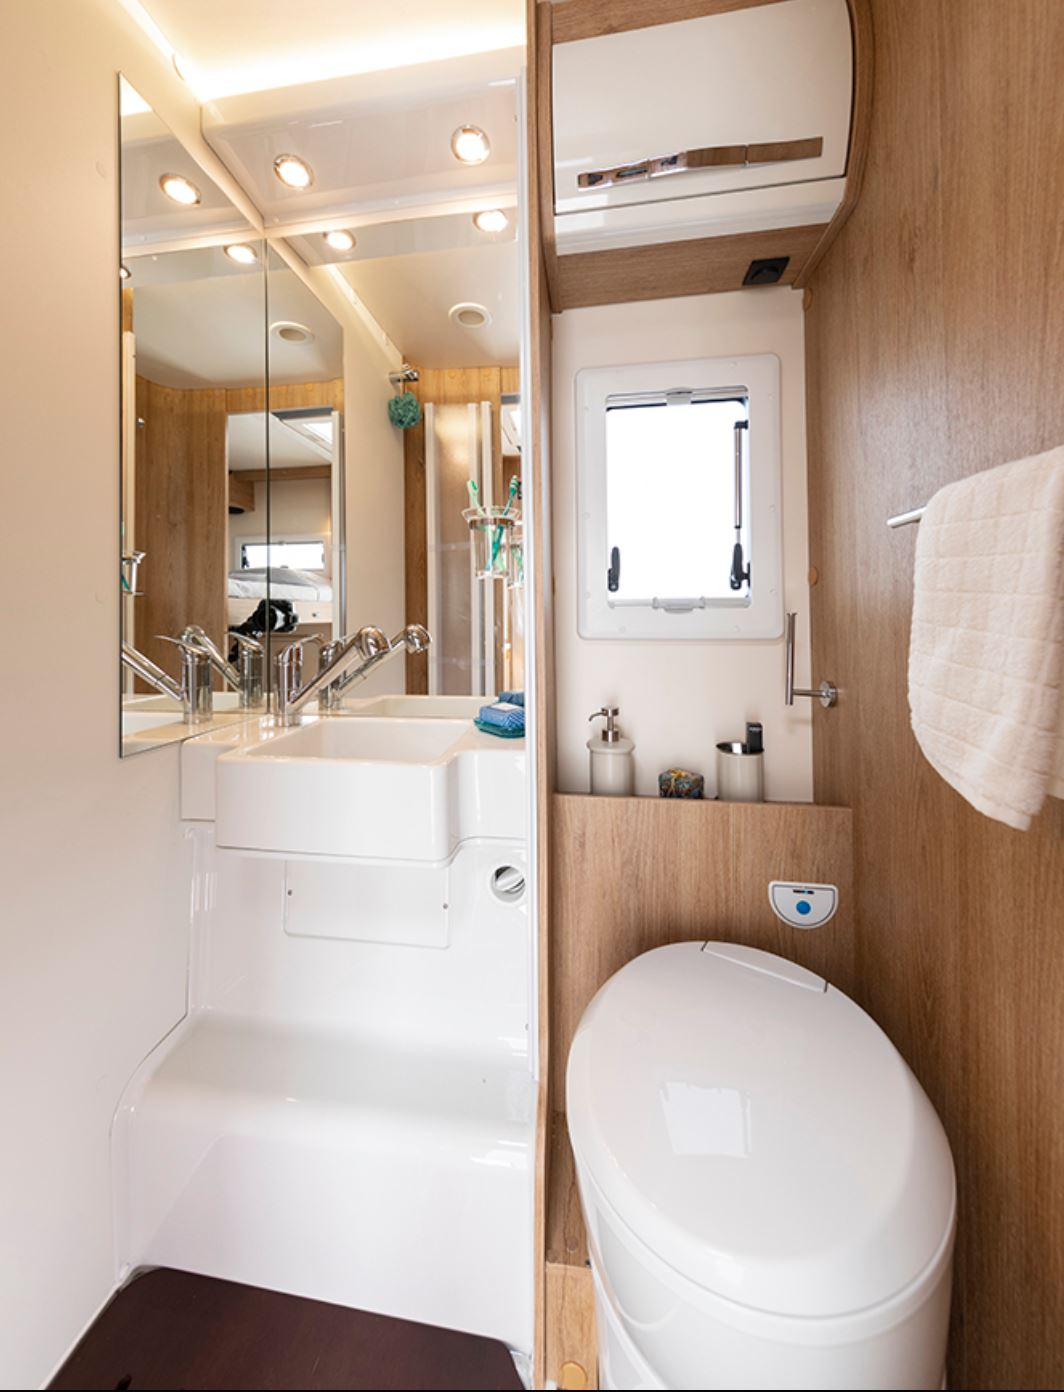 Image of toilet and shower area